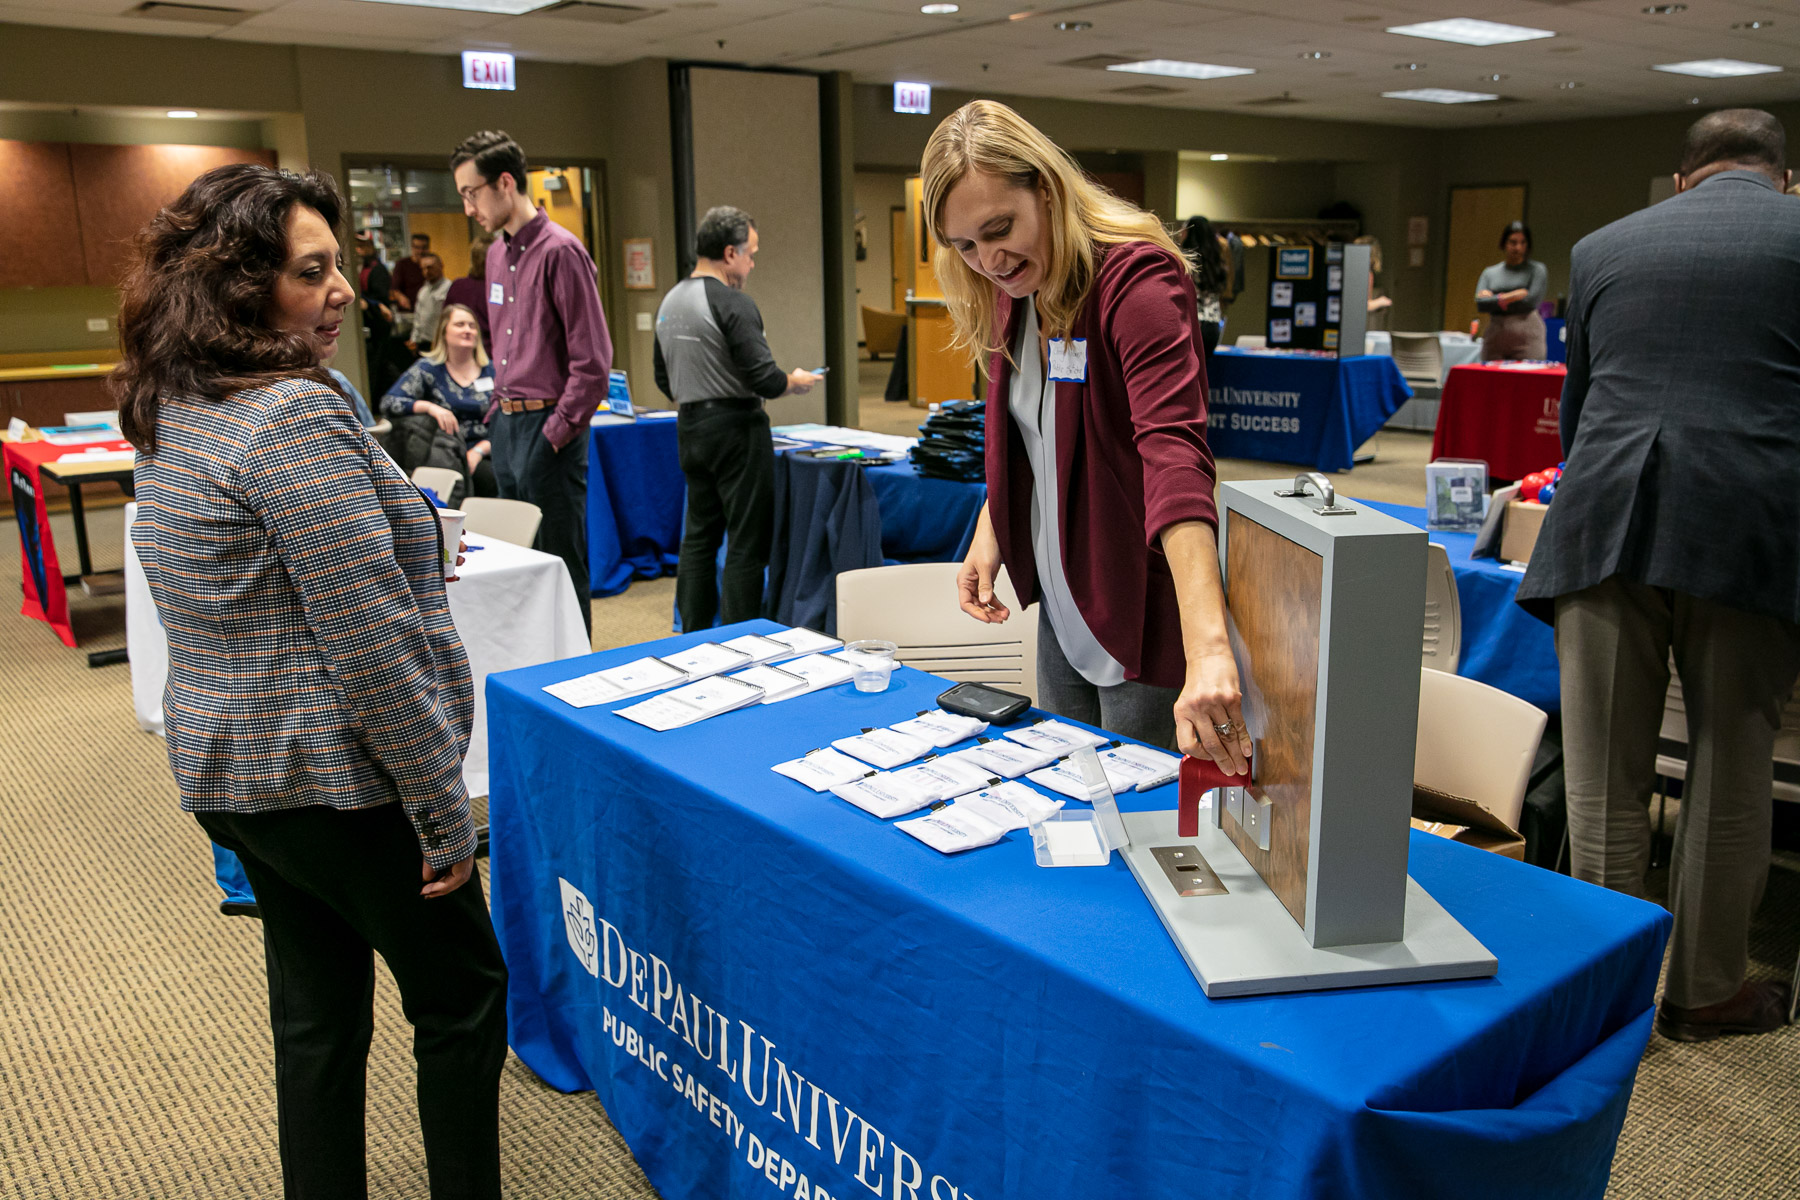 Cheryl Hover, associate director of emergency management in Facility Operations and Public Safety, demonstrates the proper use of the Nightlock Lockdown door stopper in classrooms during the Adjunct Faculty Resource Fair. (DePaul University/Randall Spriggs)